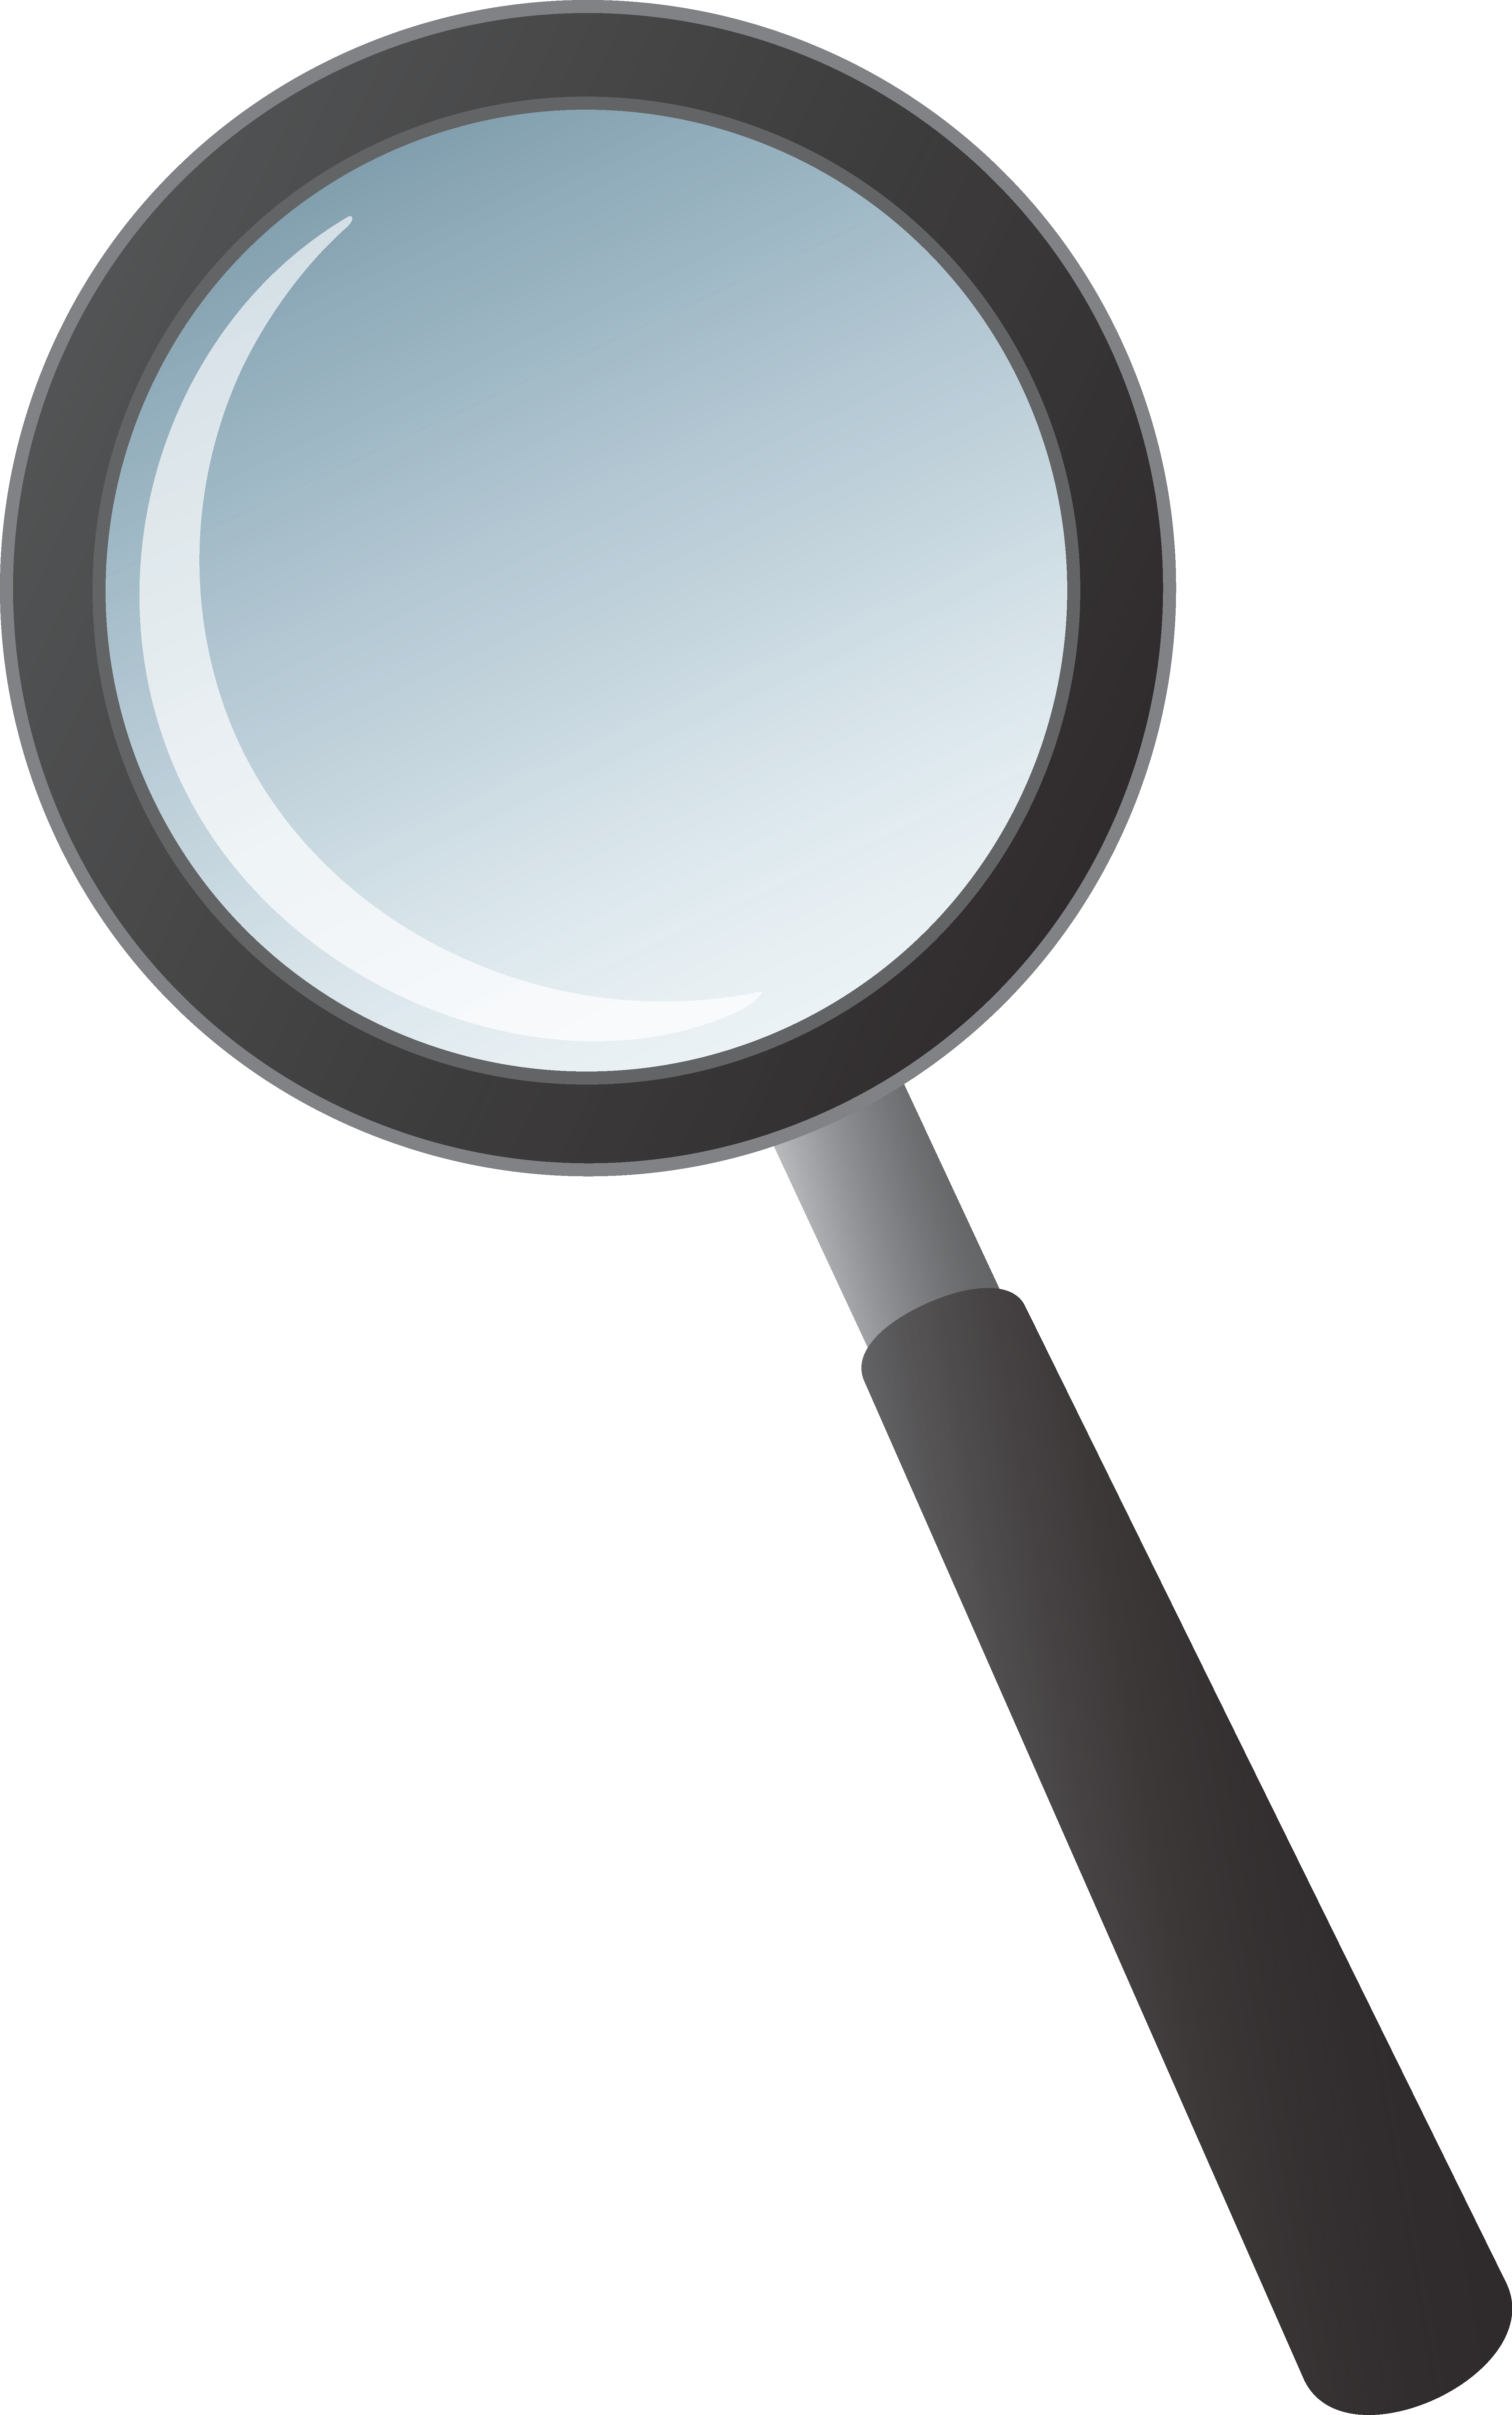 Best magnifying glass clipart 10011 clipartion magnifying glass clipart 10011 voltagebd Gallery